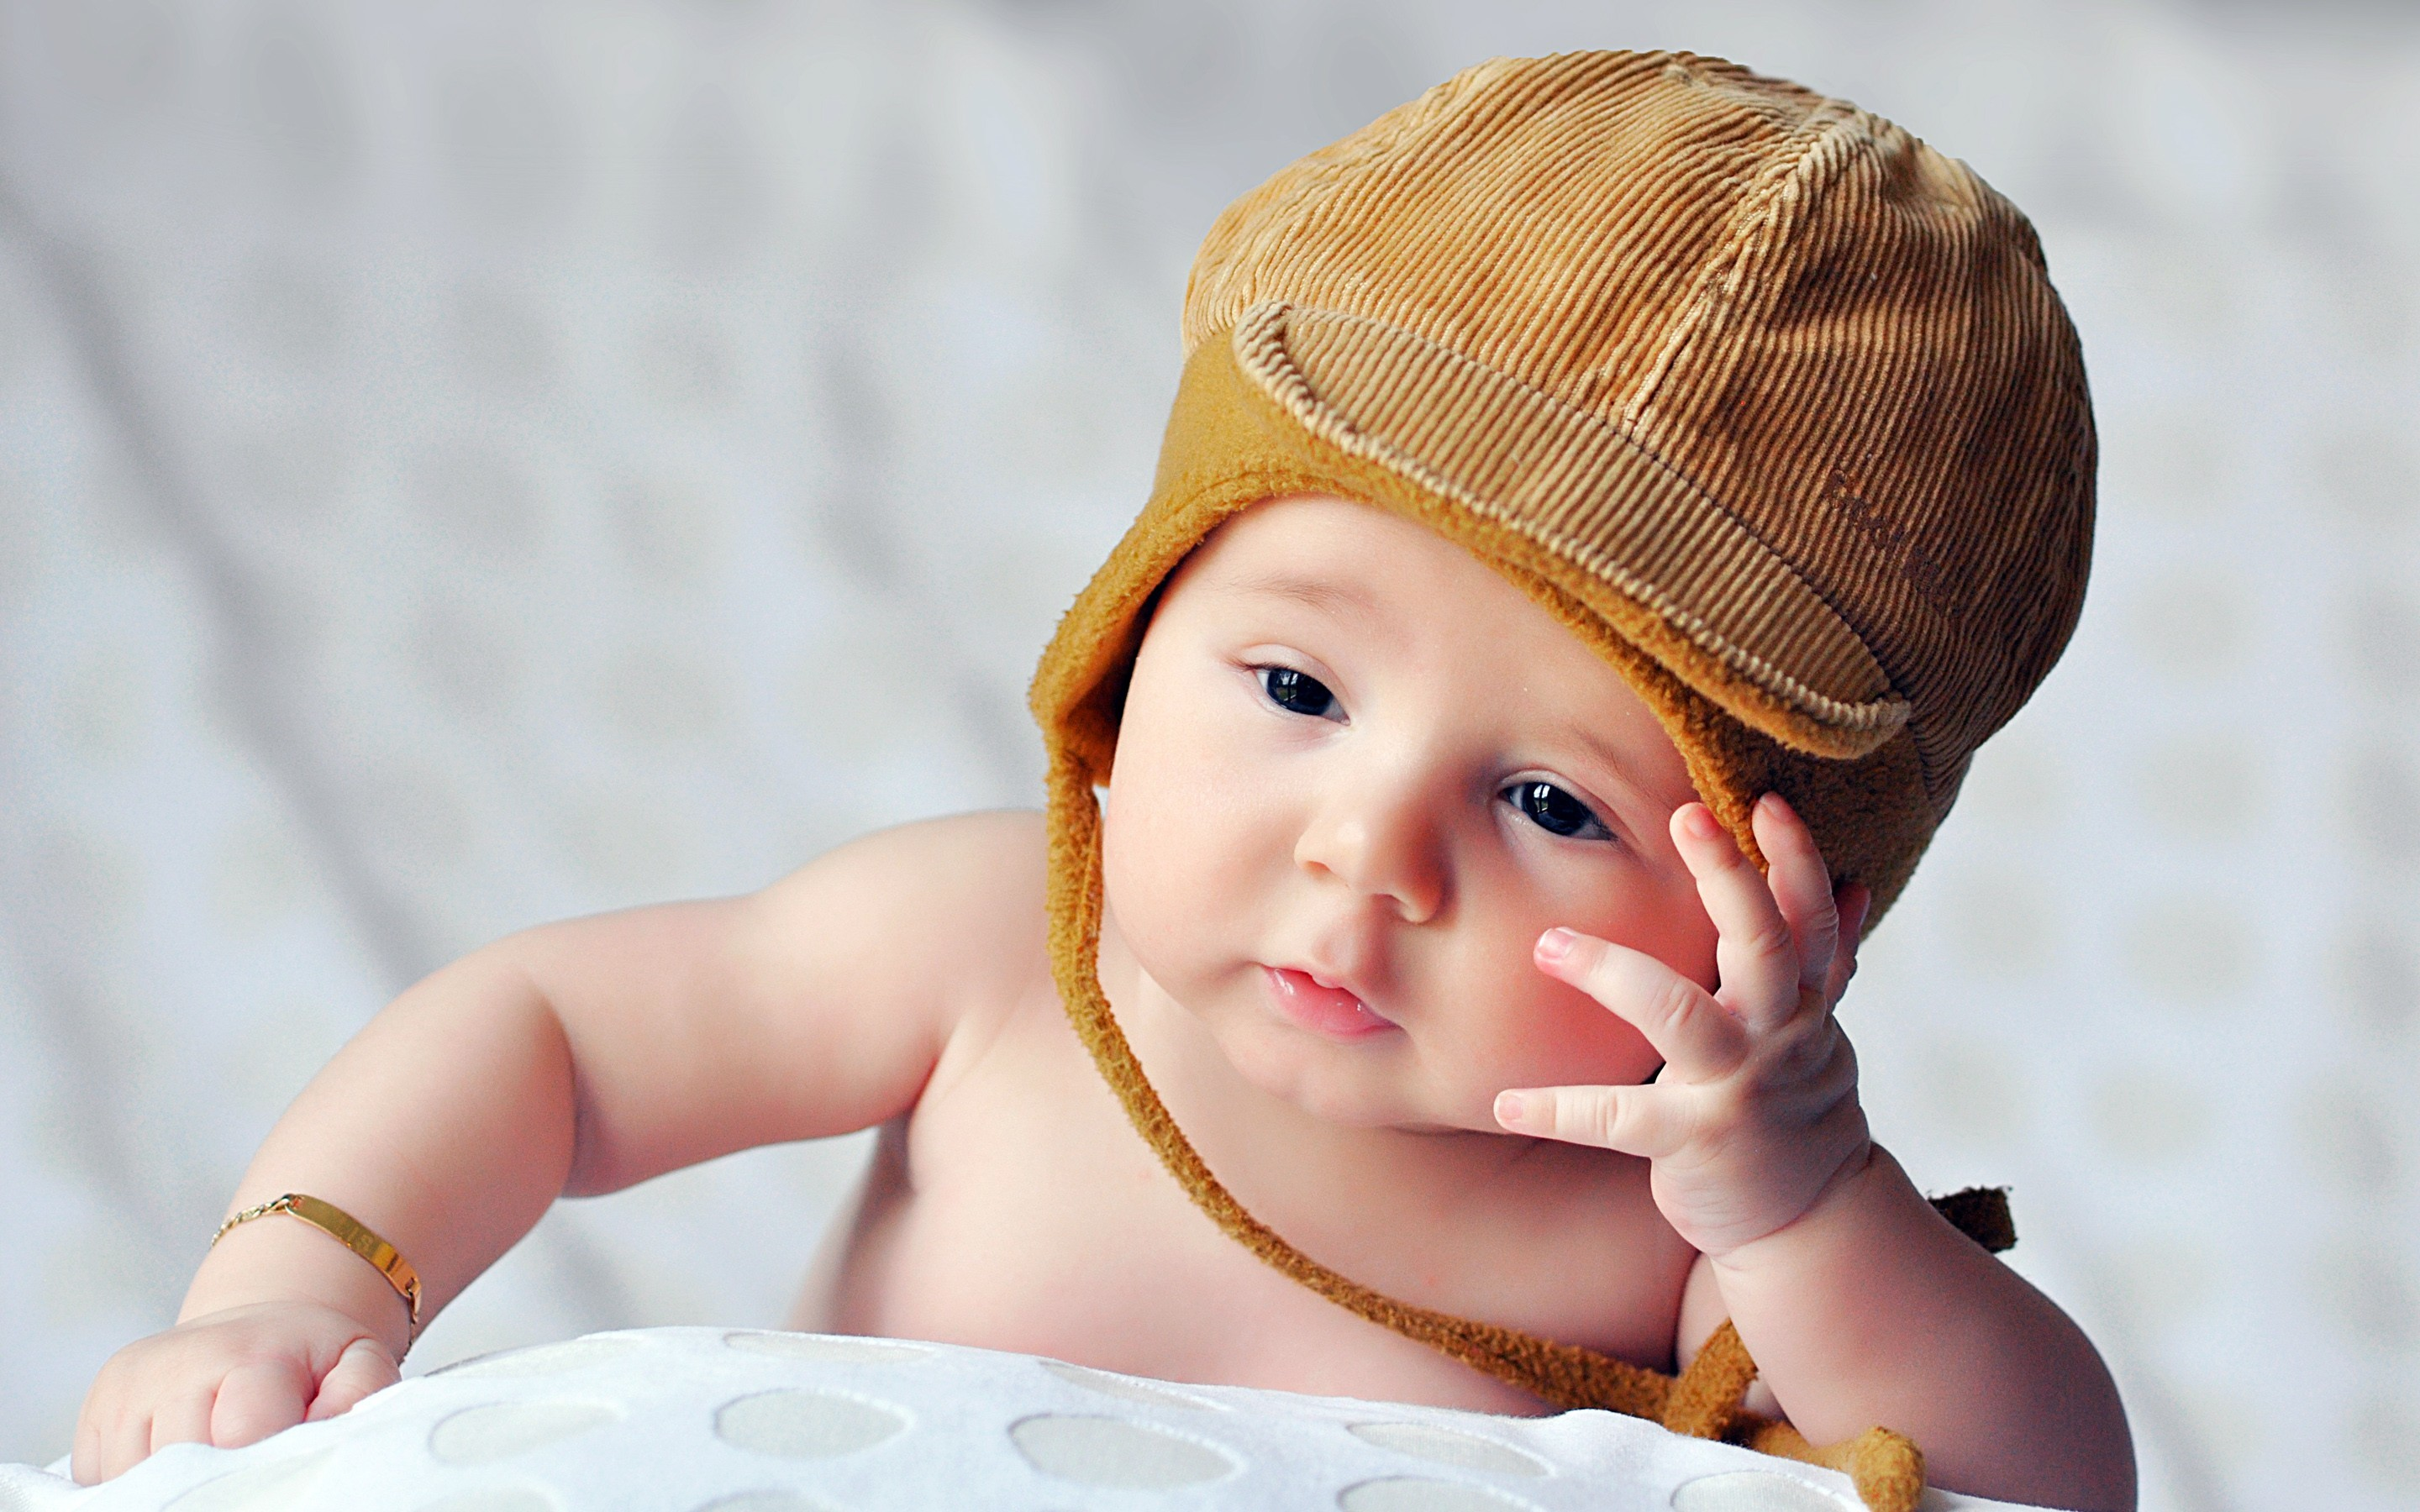 Cute Baby With Hat Wallpapers: Cute Baby Boy Wallpapers ·① WallpaperTag